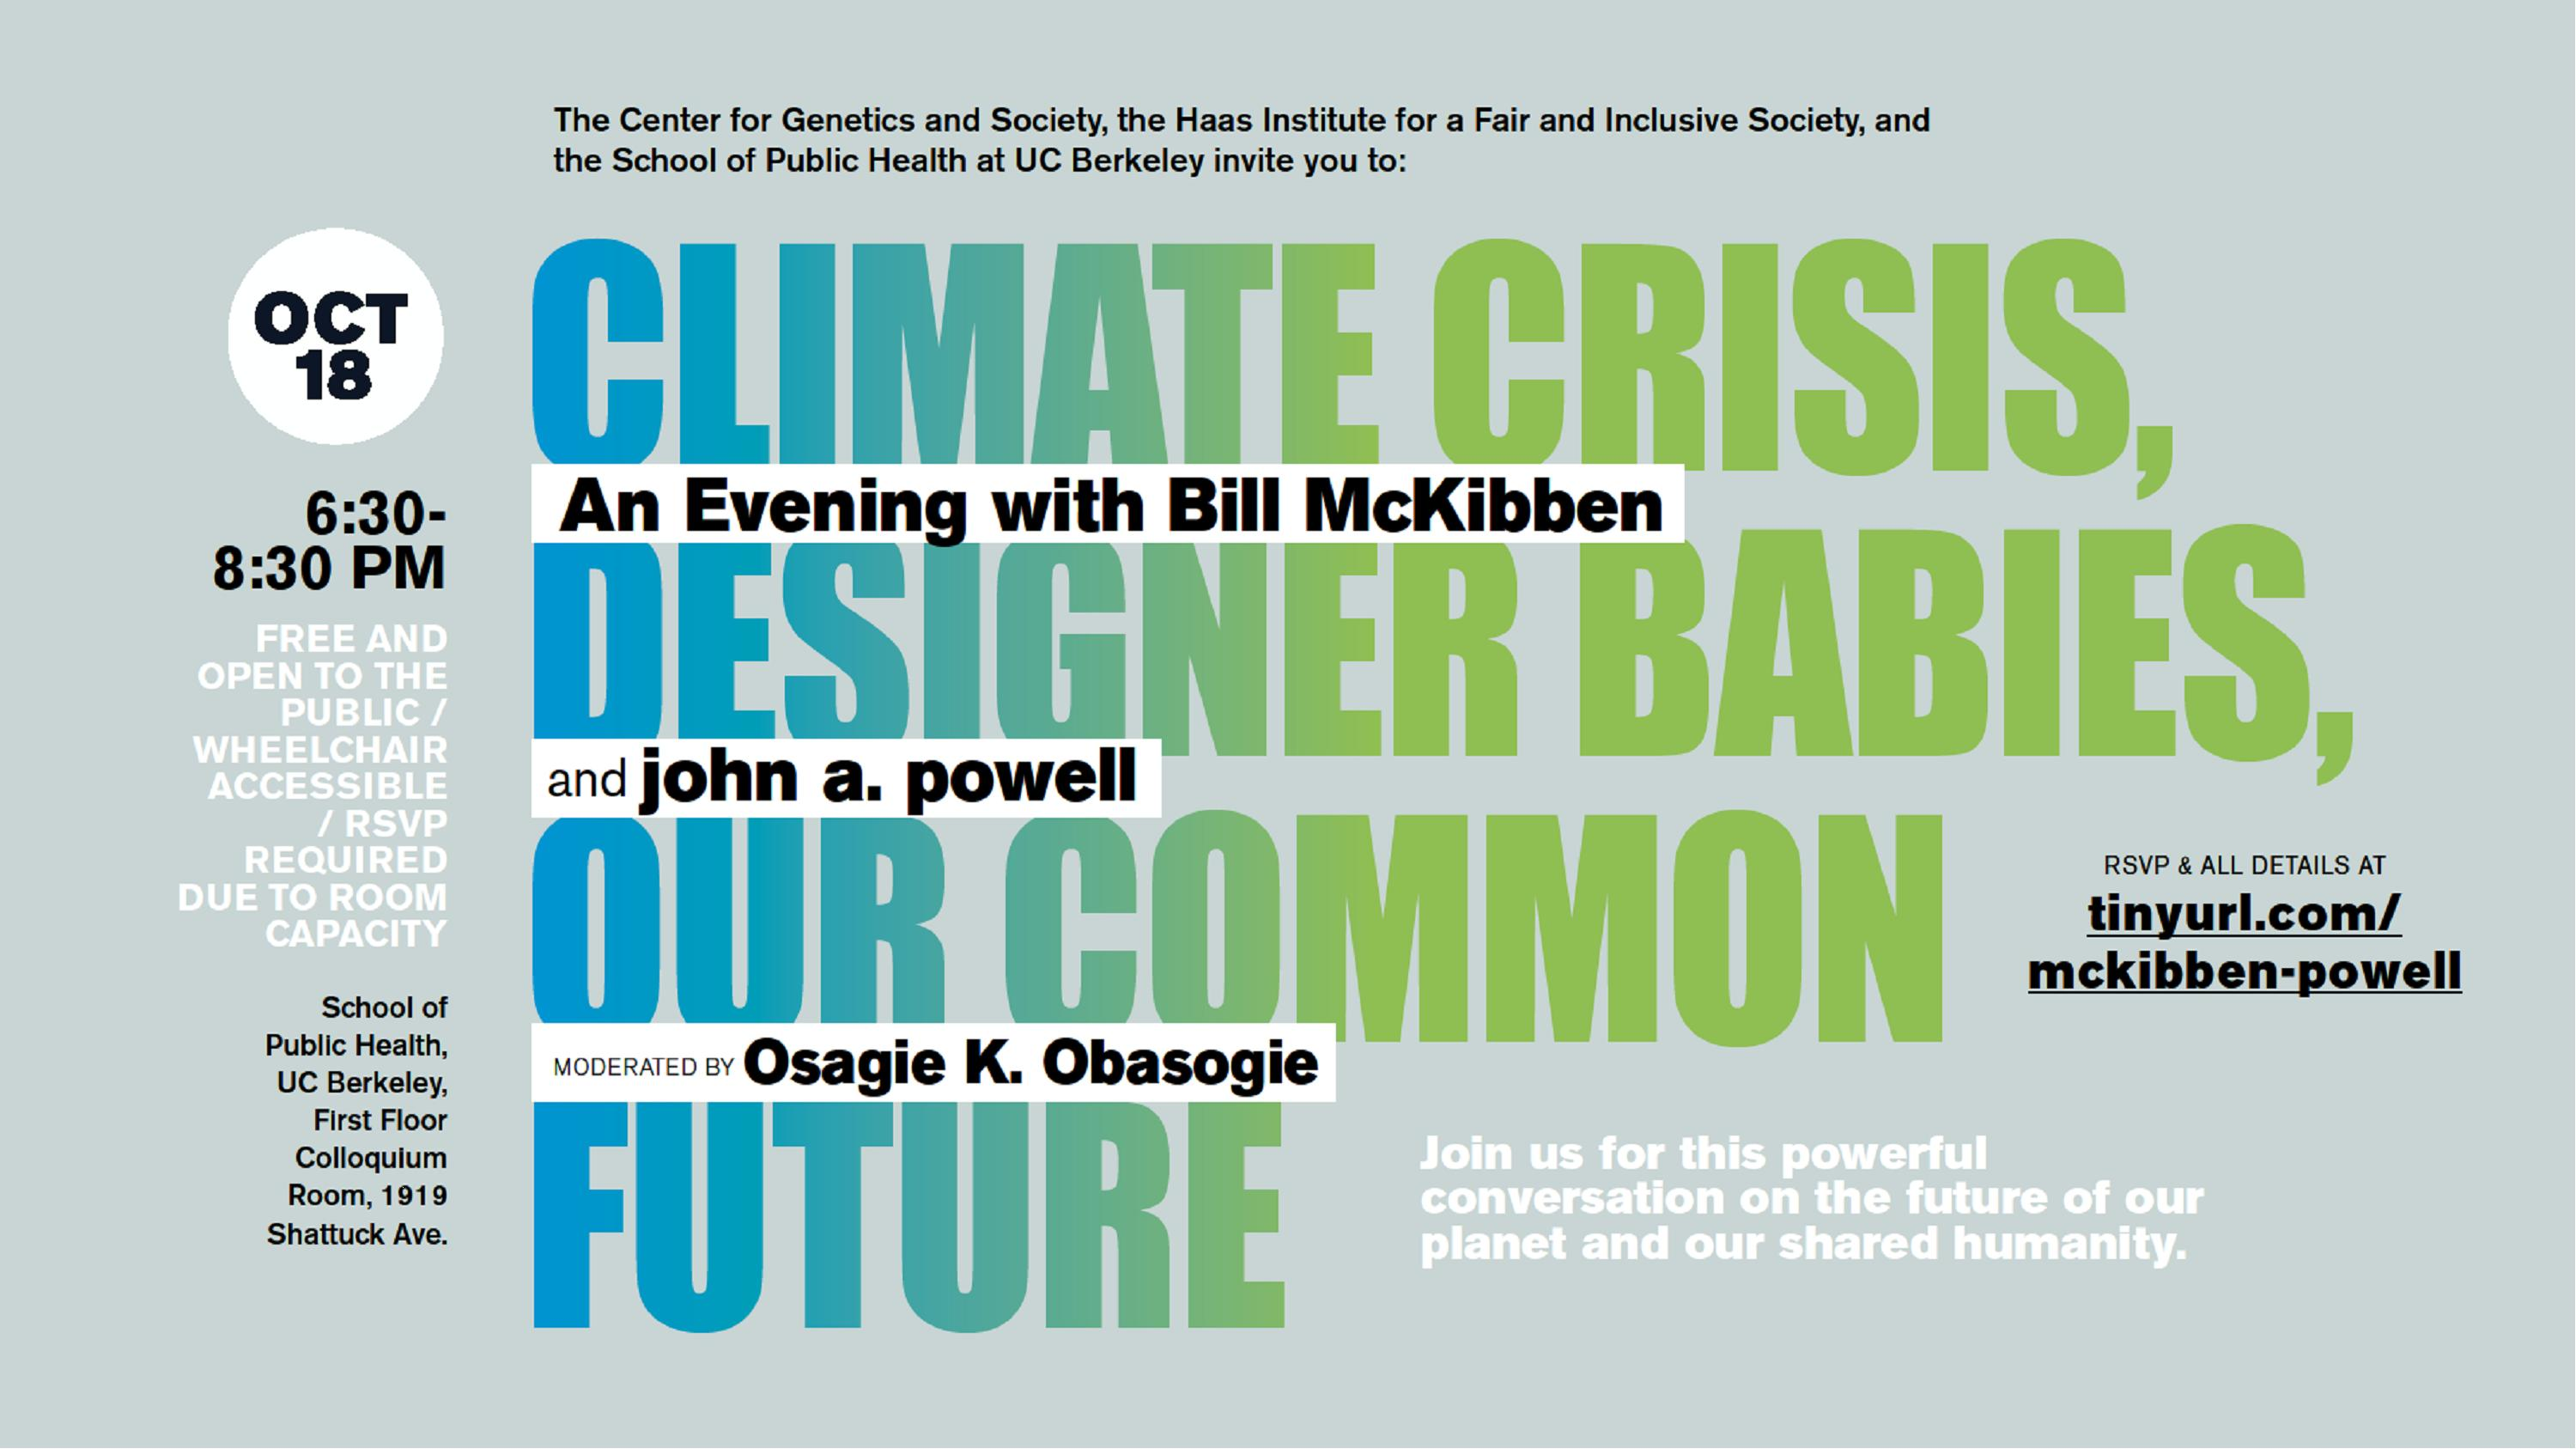 Announcement to Climate Crisis event on October 18, 2019